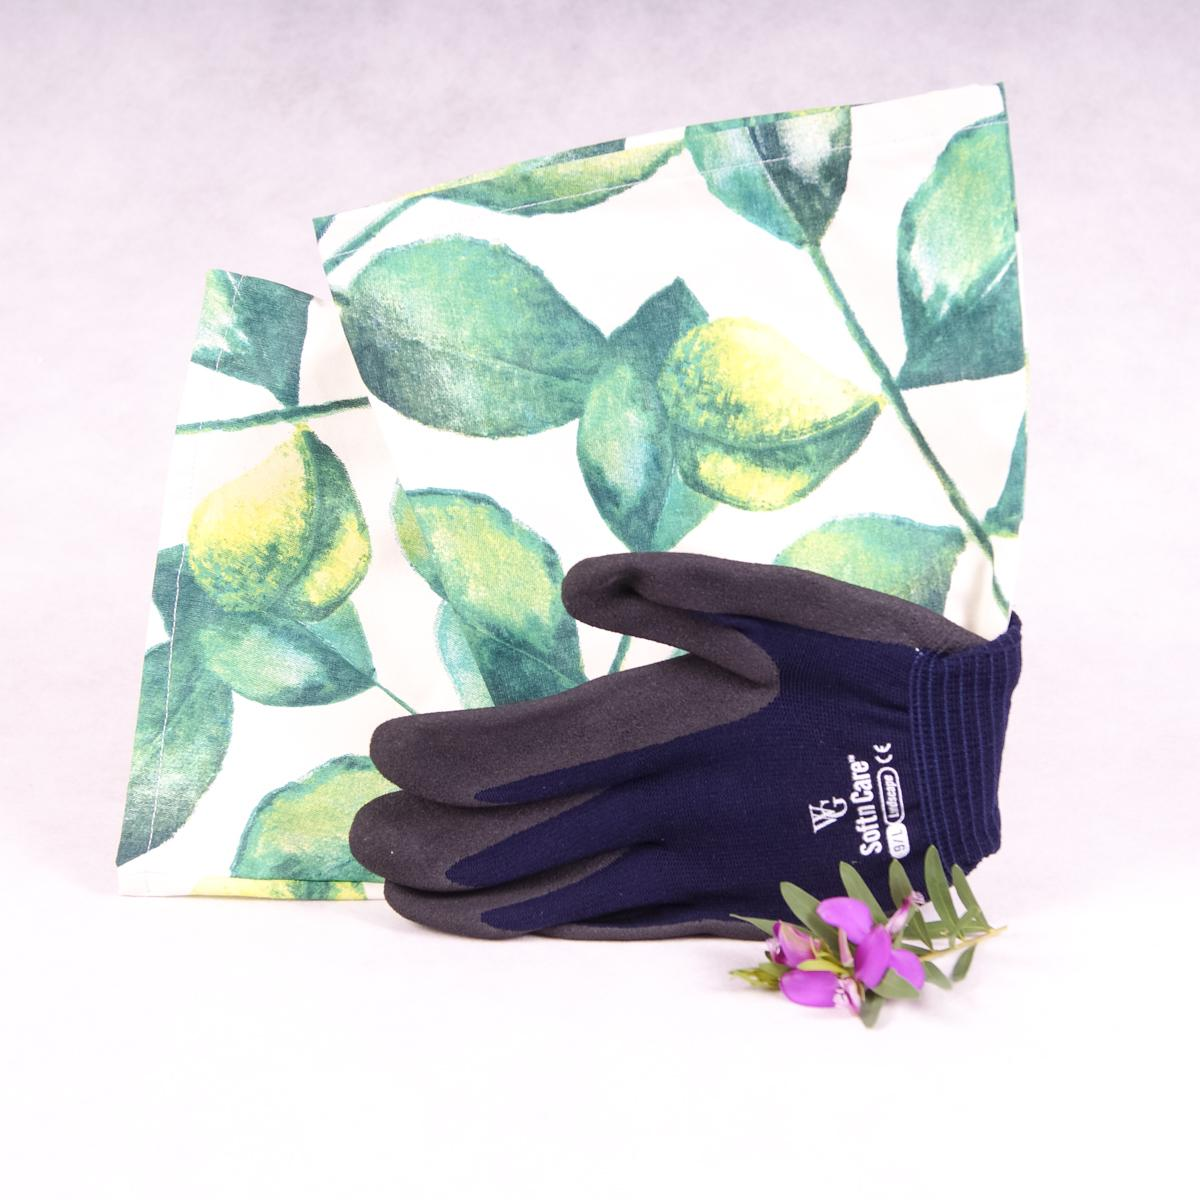 Long sleeve gardening gloves (Large) - Green Leaves - Gloves - Throw Some Seeds - Australian gardening gifts and eco products online!